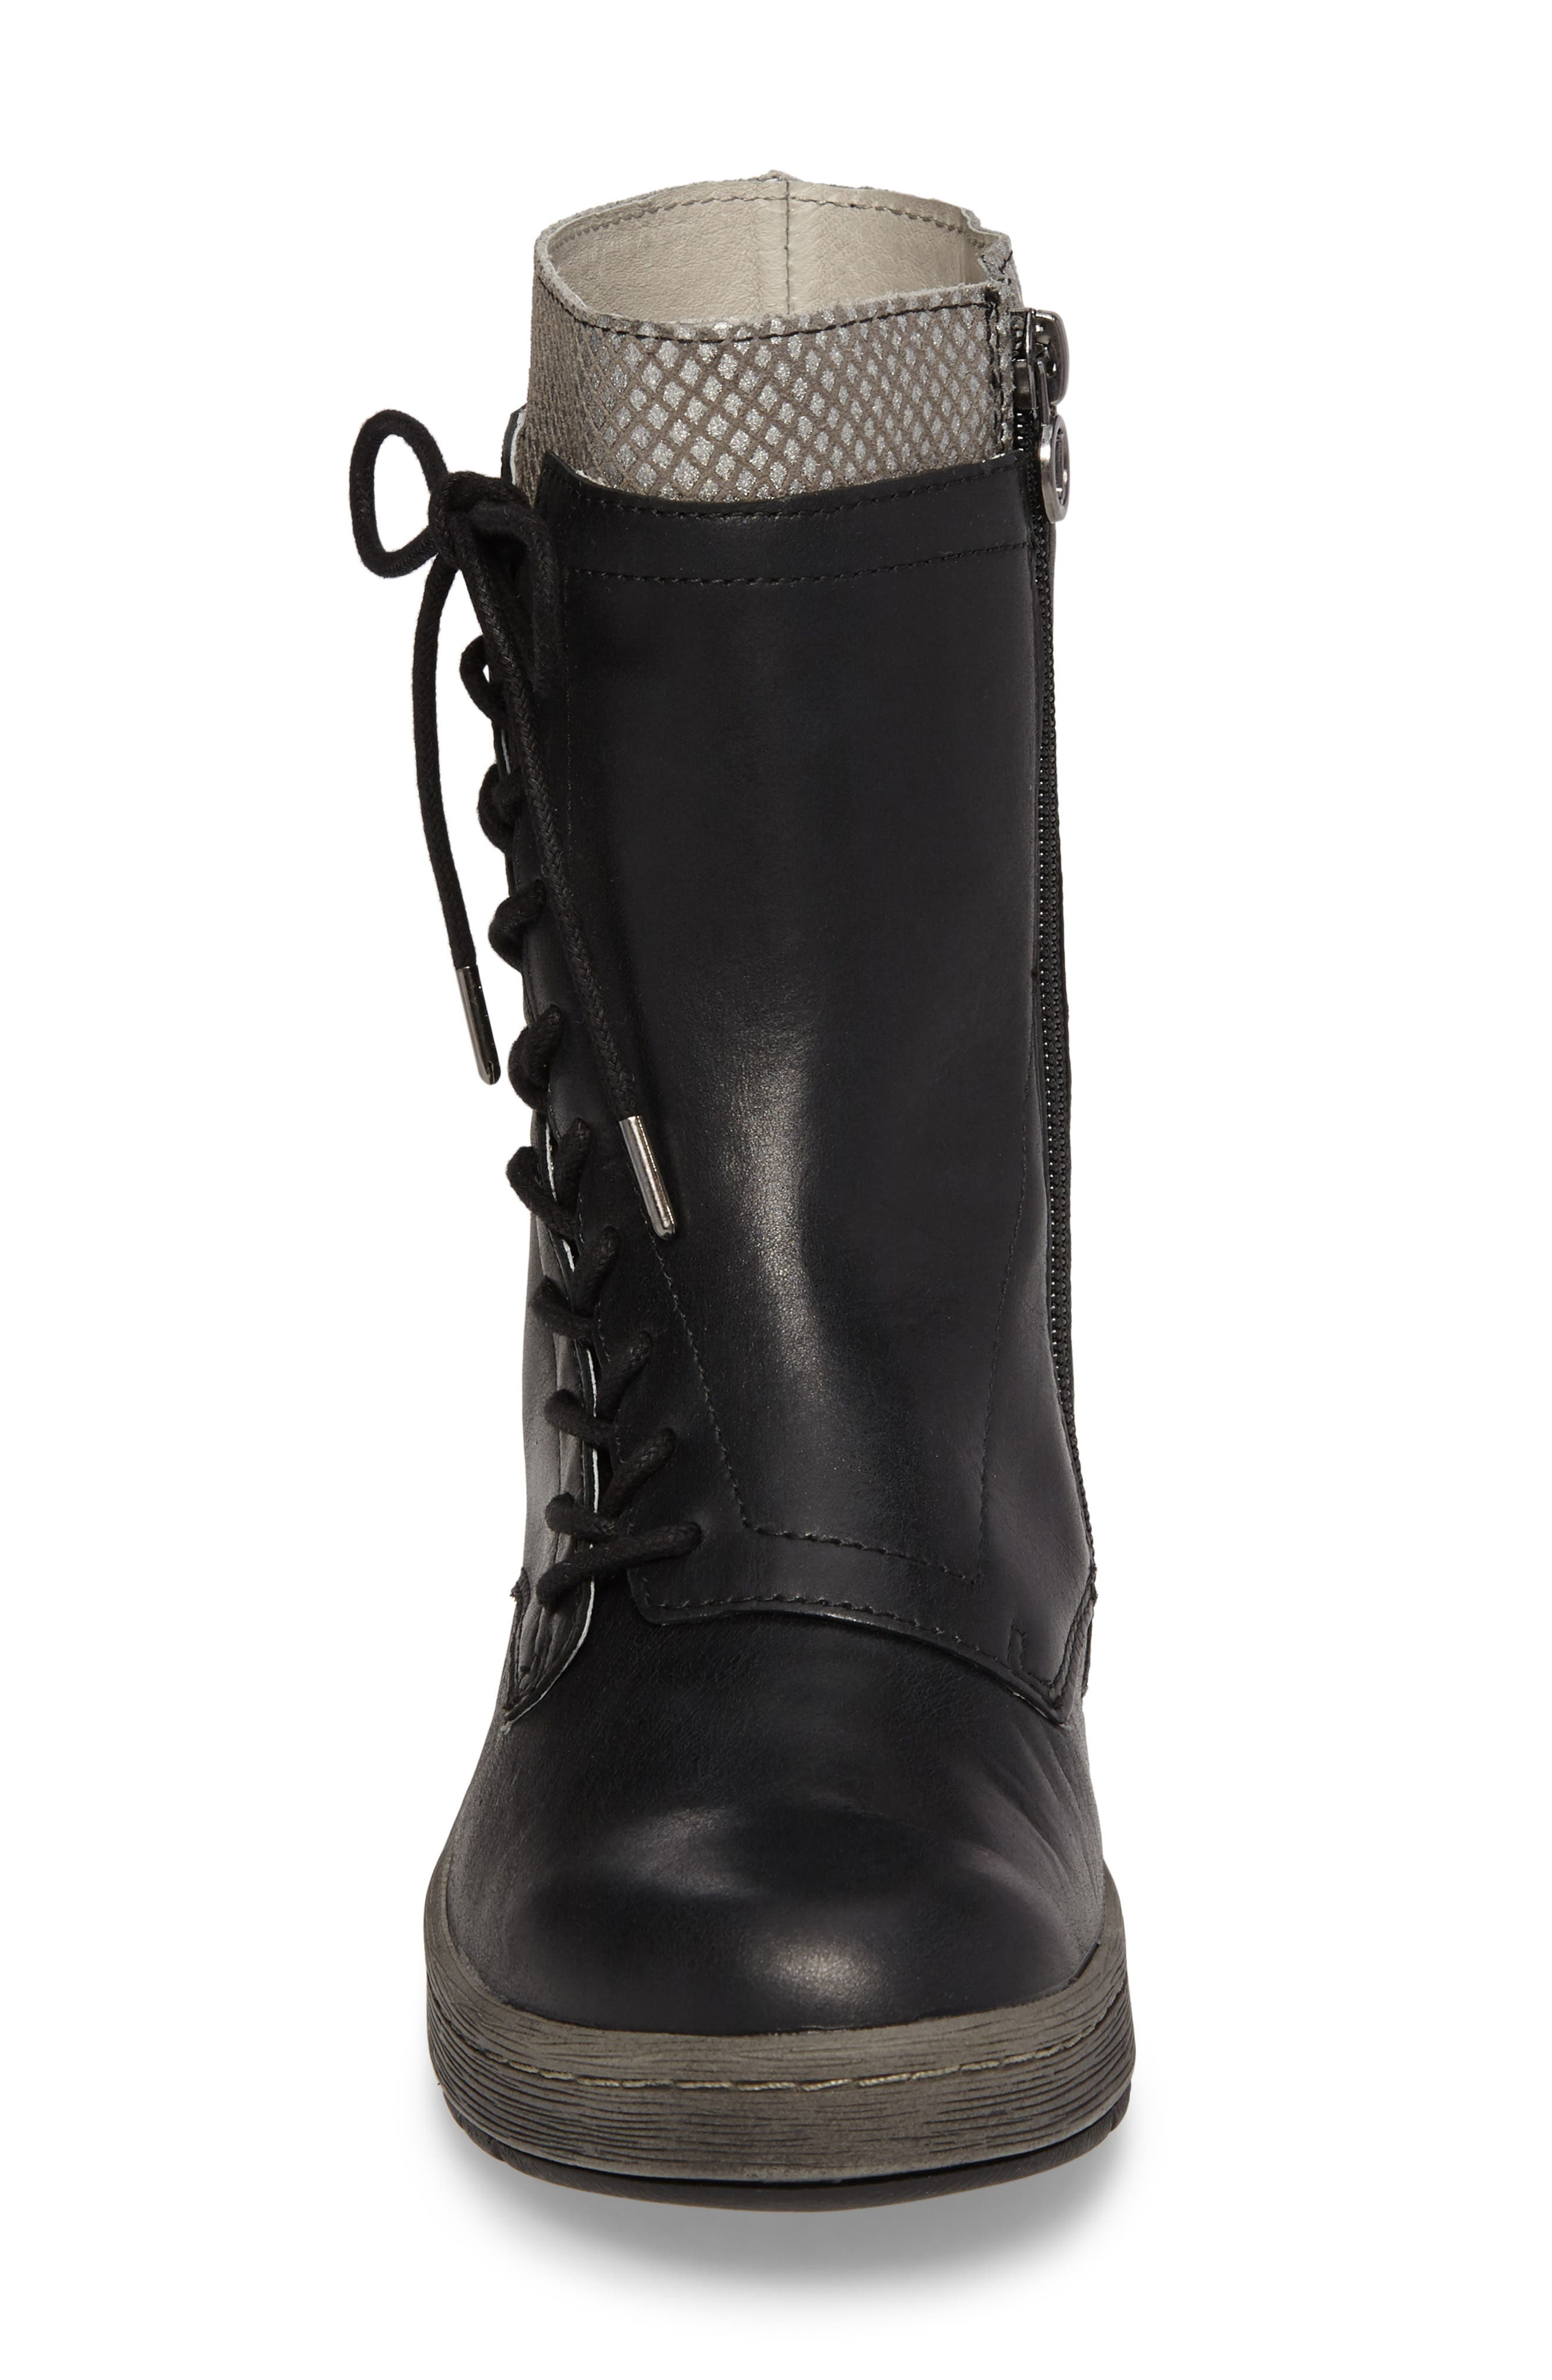 Chestnut Lace-Up Water Resistant Boot,                             Alternate thumbnail 4, color,                             001